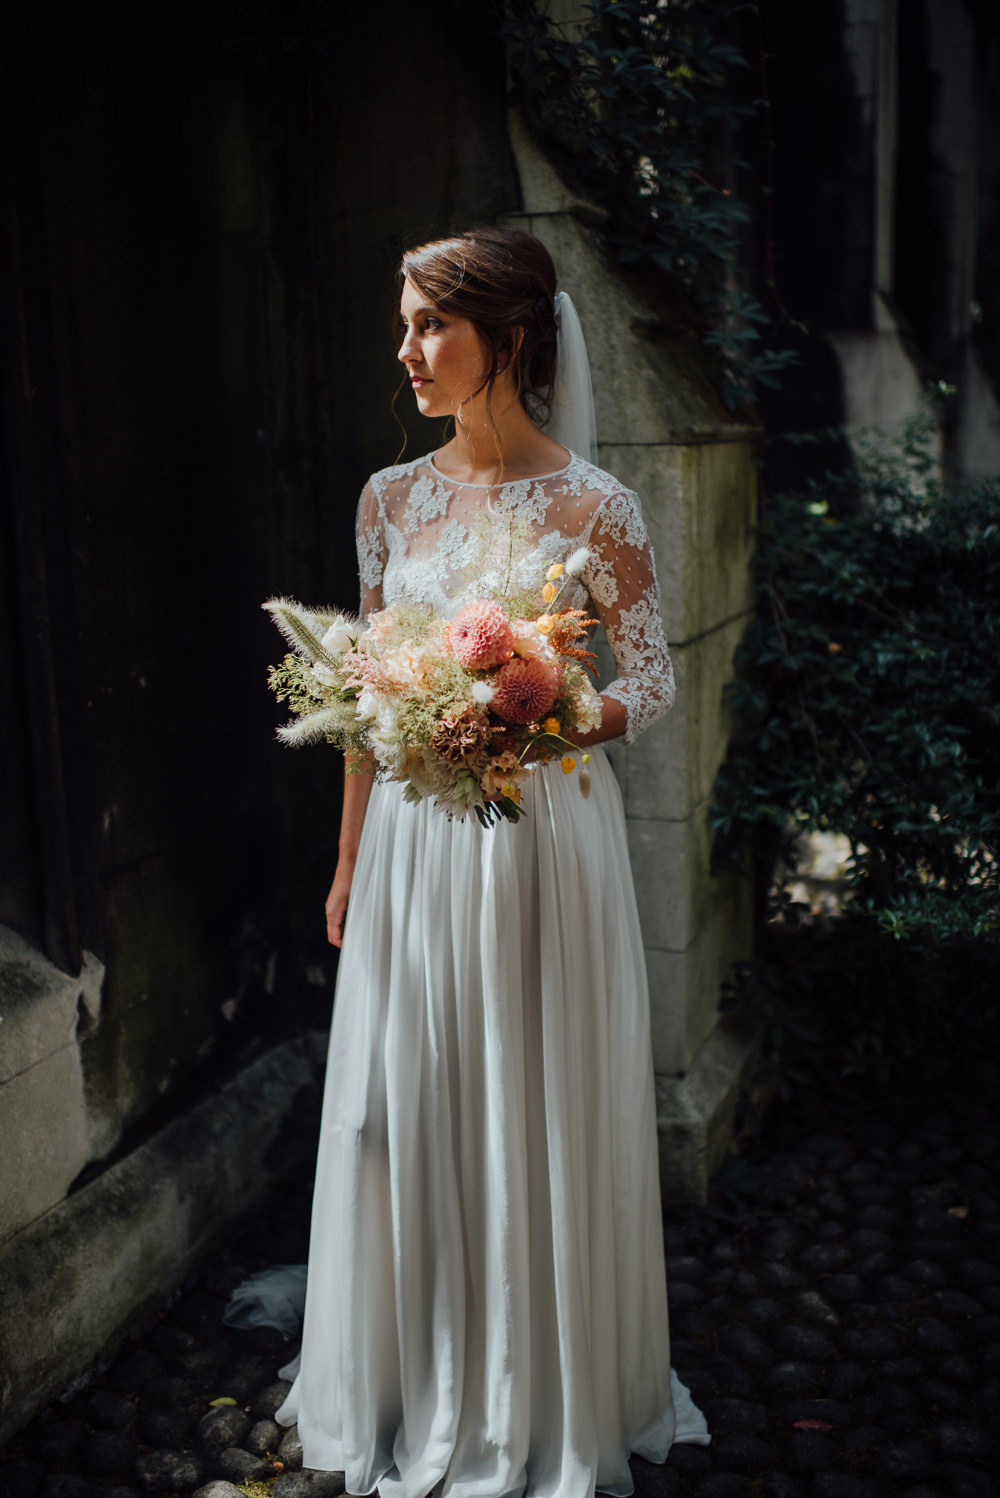 Dress Gown Bride Bridal Veil Lace Sleeves Open Back St Paul's Cathedral Wedding The Shannons Photography